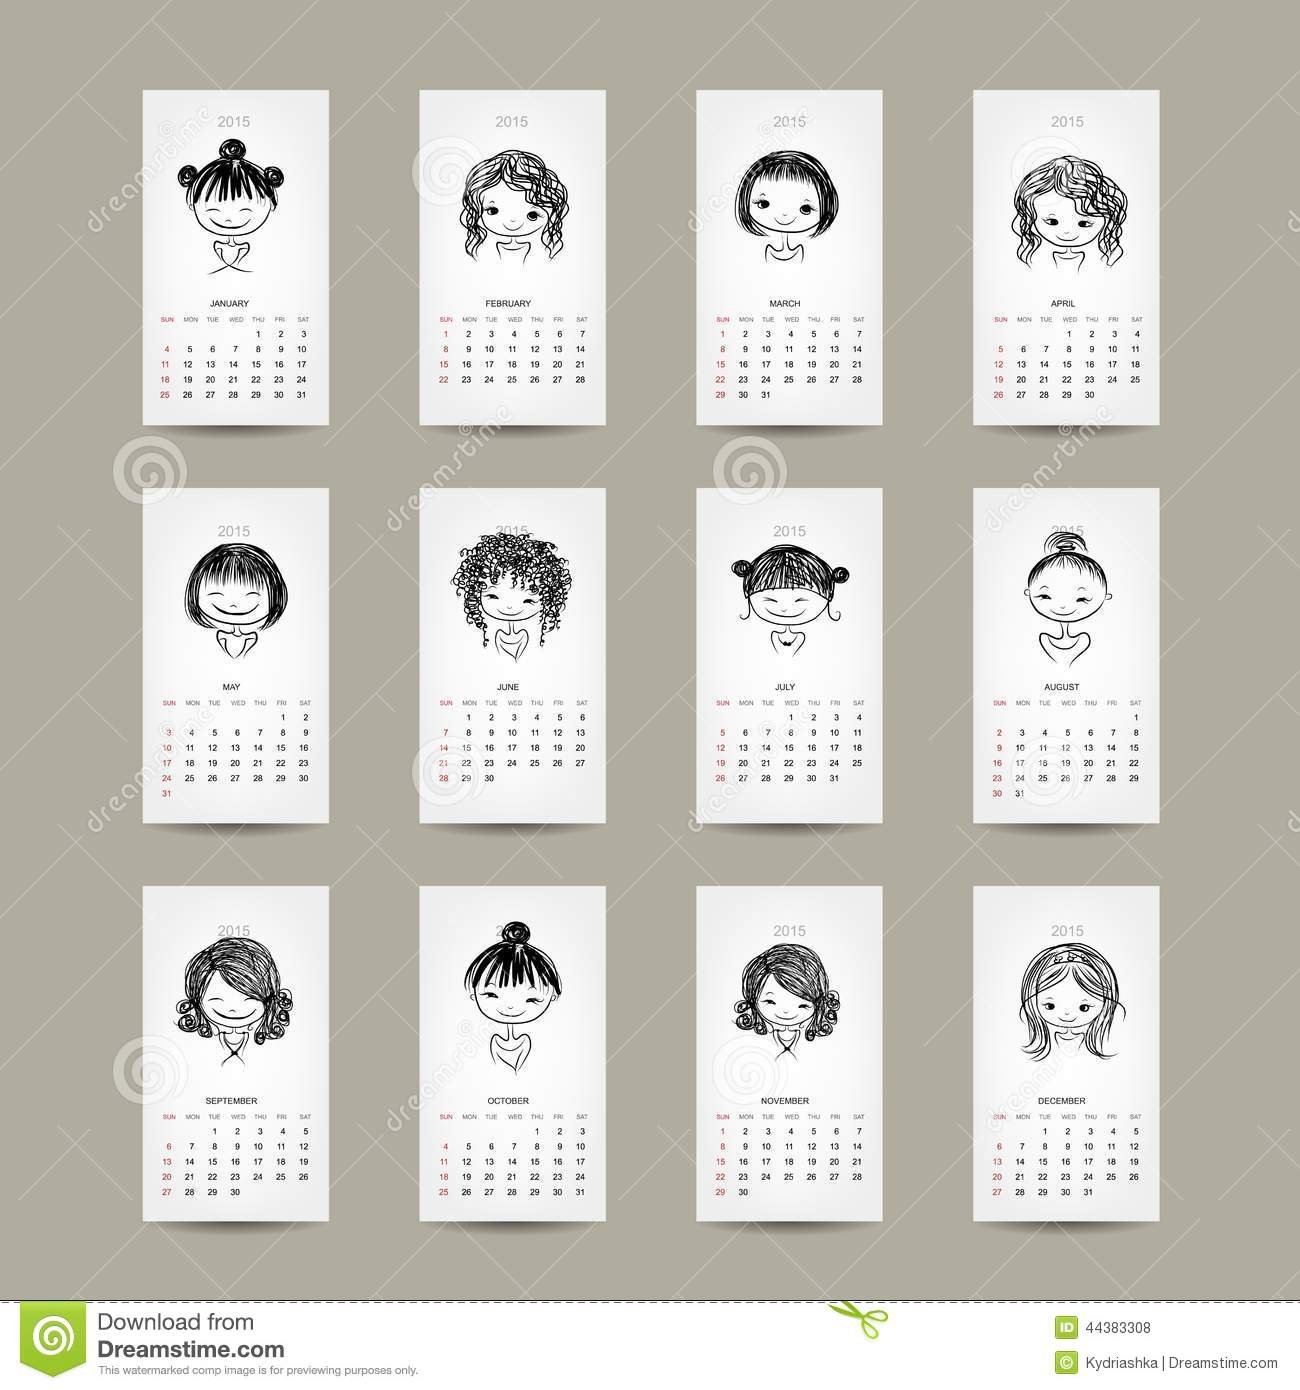 Illustration Calendar Design : Calendar grid cute girls design stock vector image